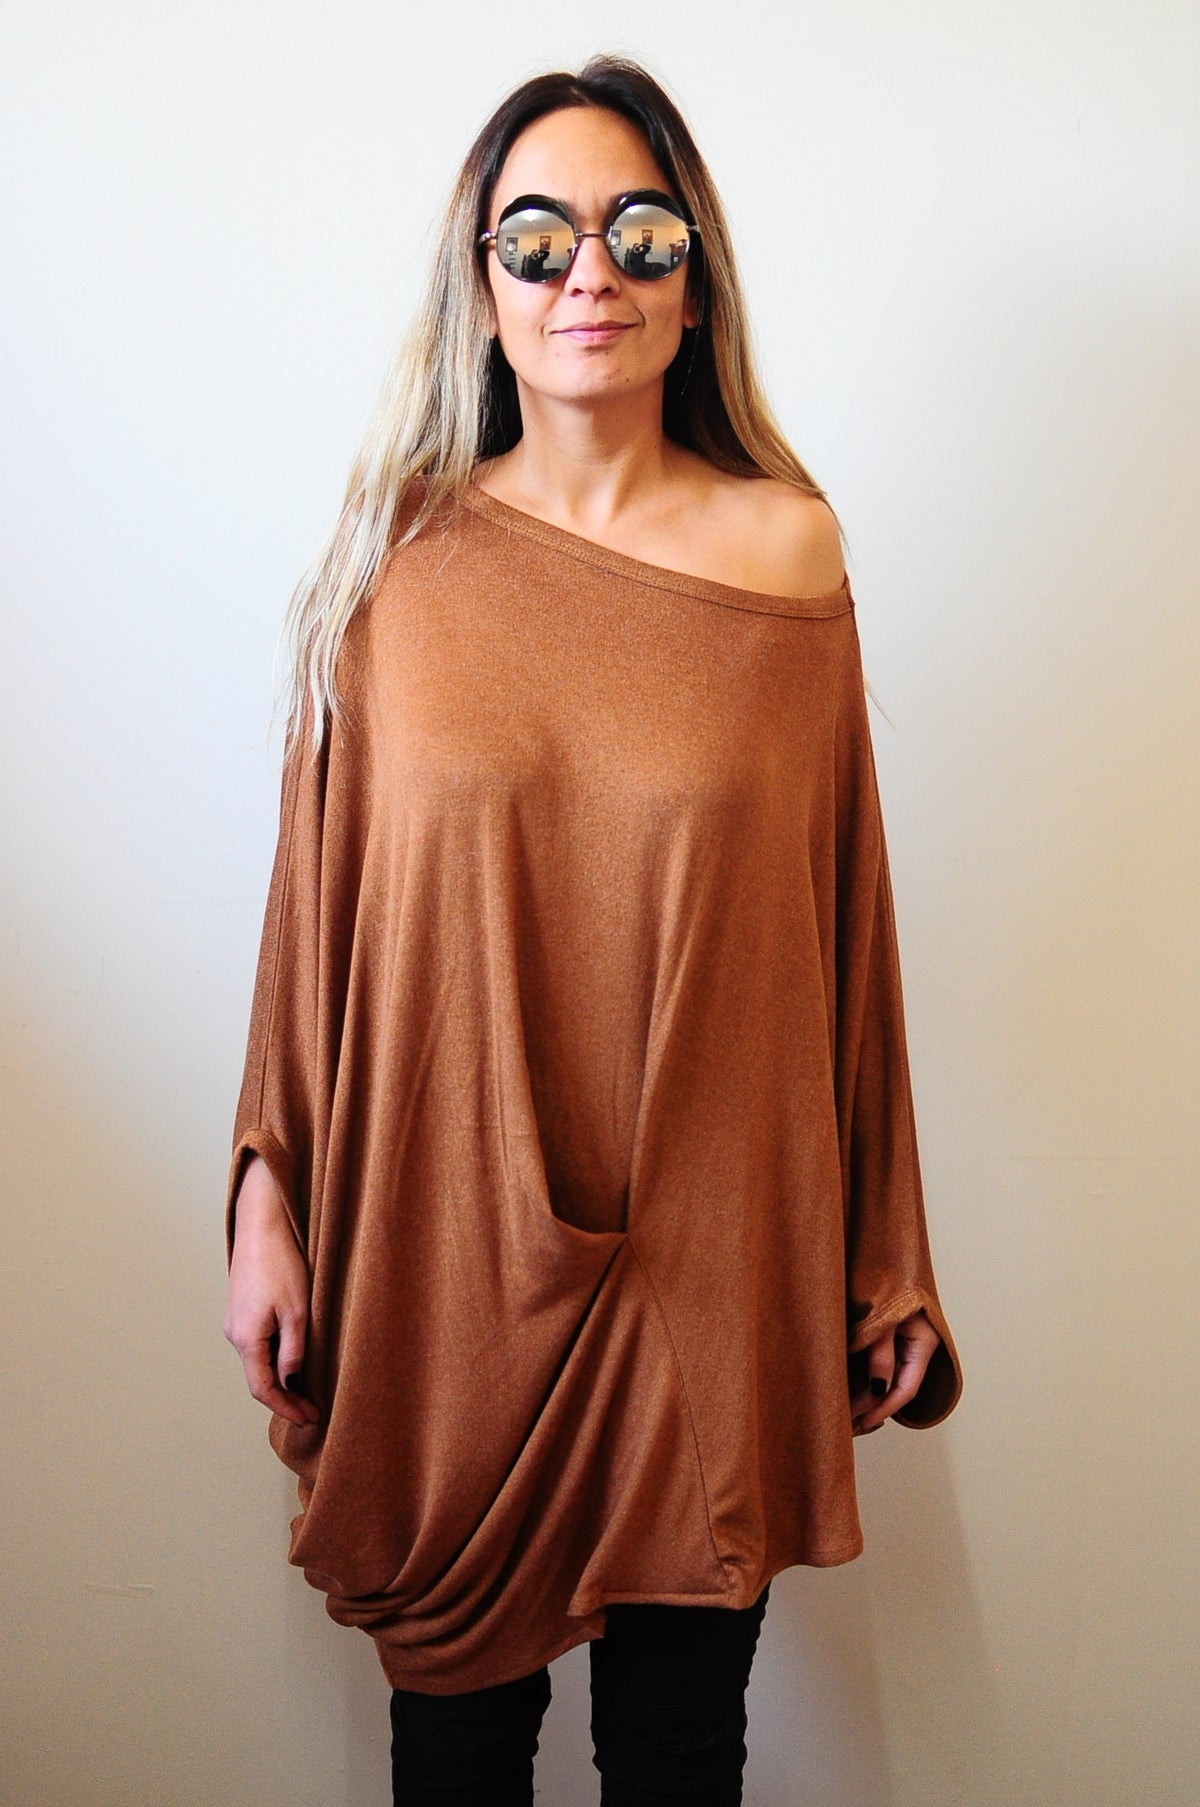 Twisted Brown Top Oversized Asymmetrical Top Loose Grey Top Casual Cotton Blouse